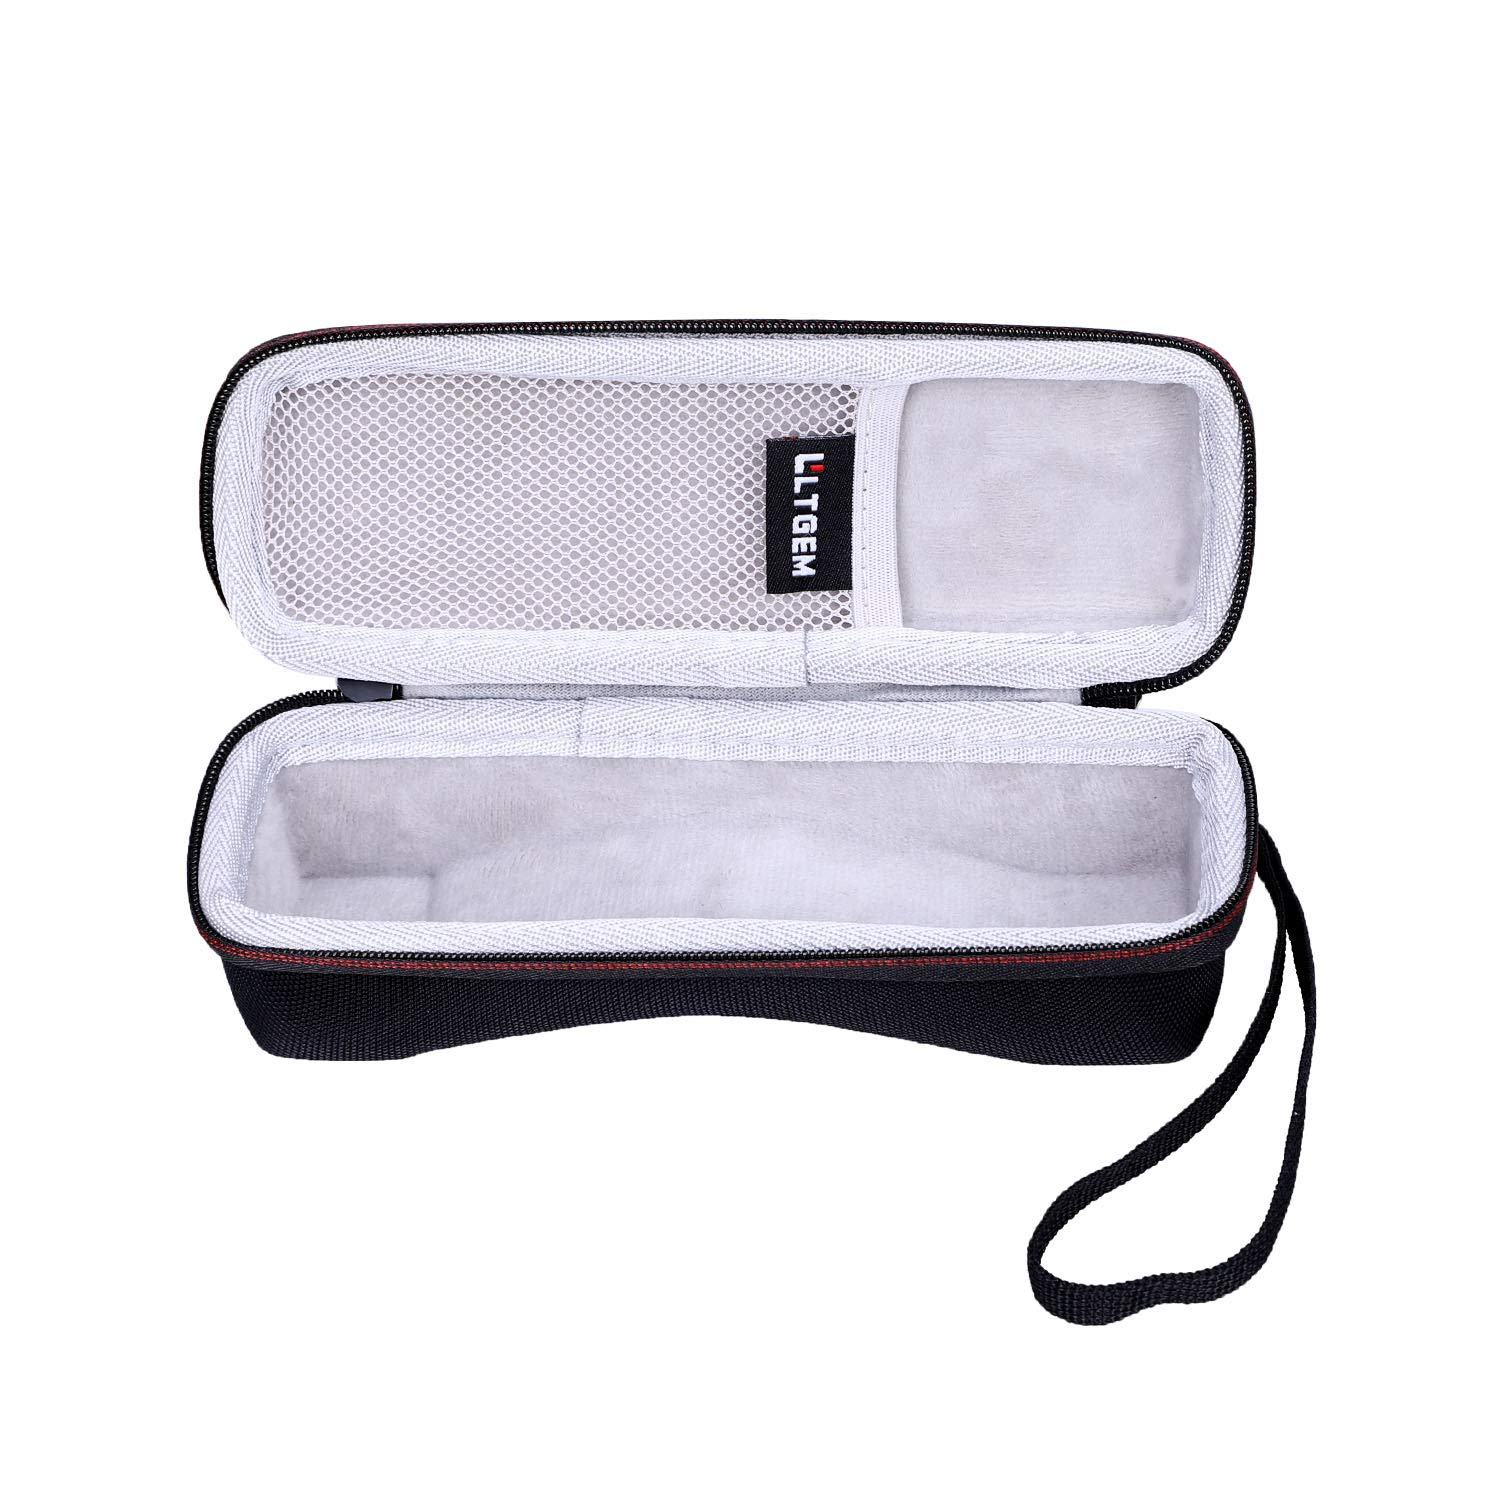 LTGEM Hard Carrying Case for Equinox Digital Thermometer Non Contact Infrared Forehead - Baby Thermometer